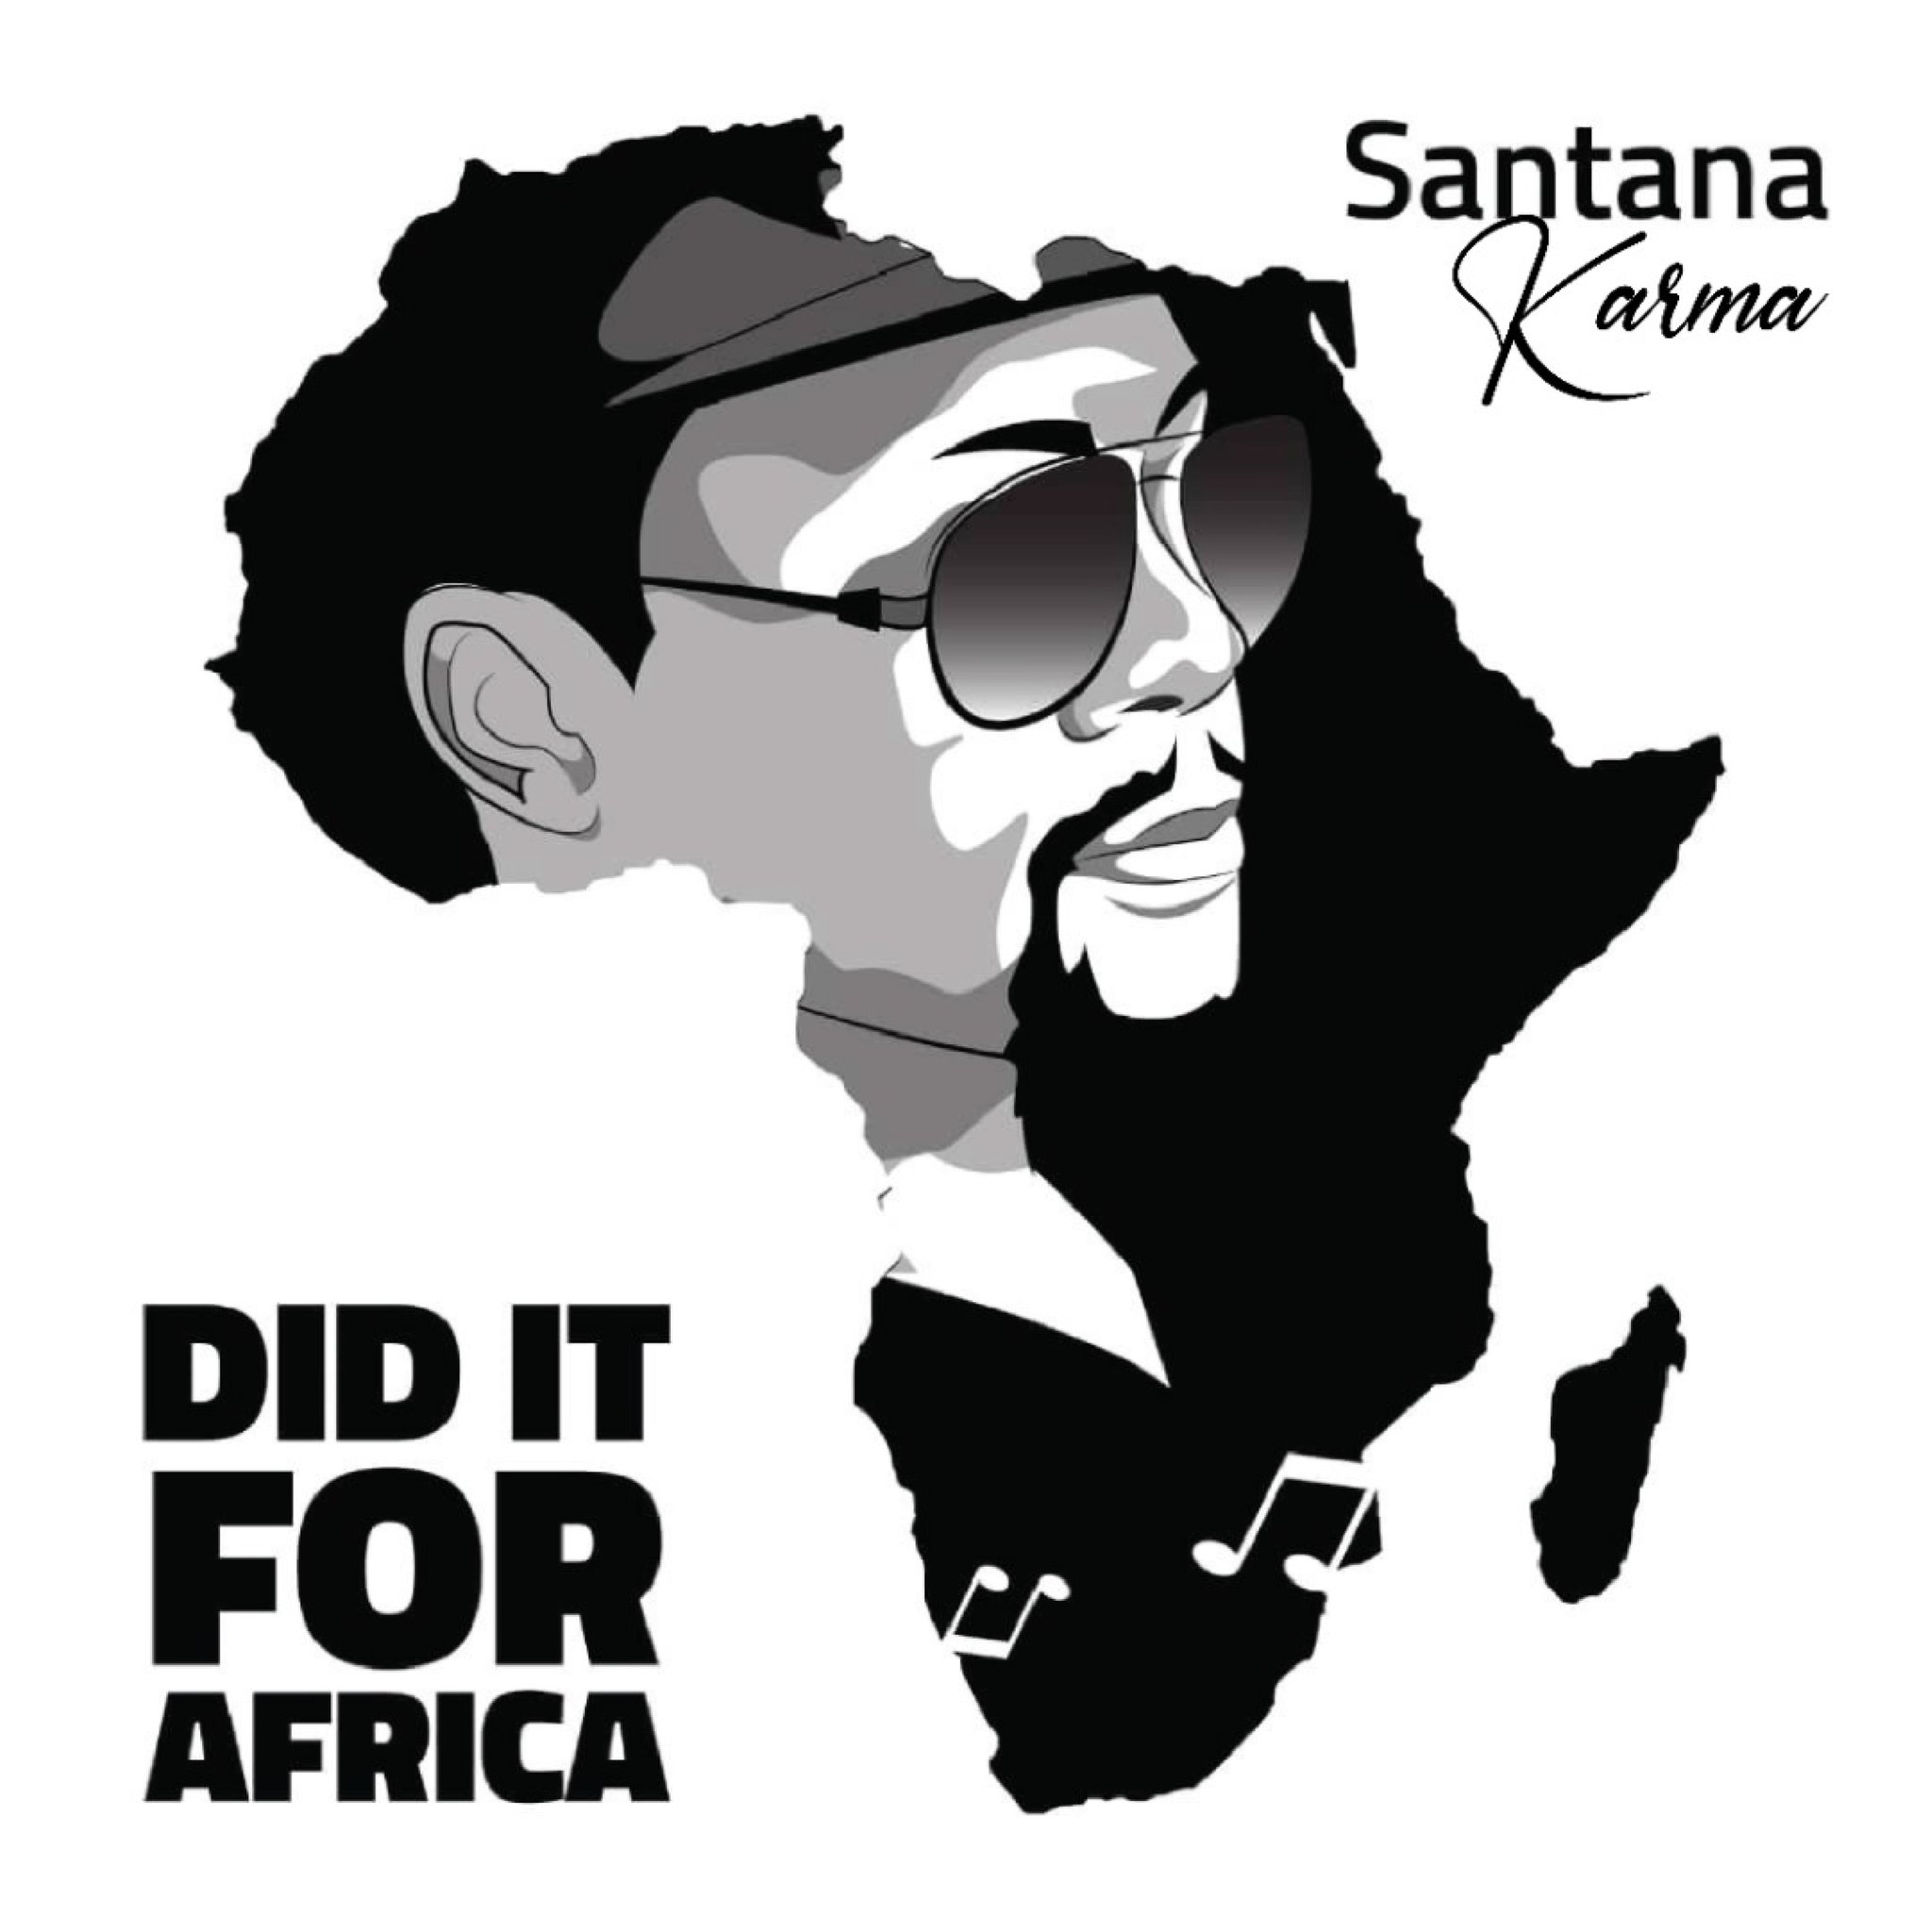 Album review: Did it for Africa by Santana Karma